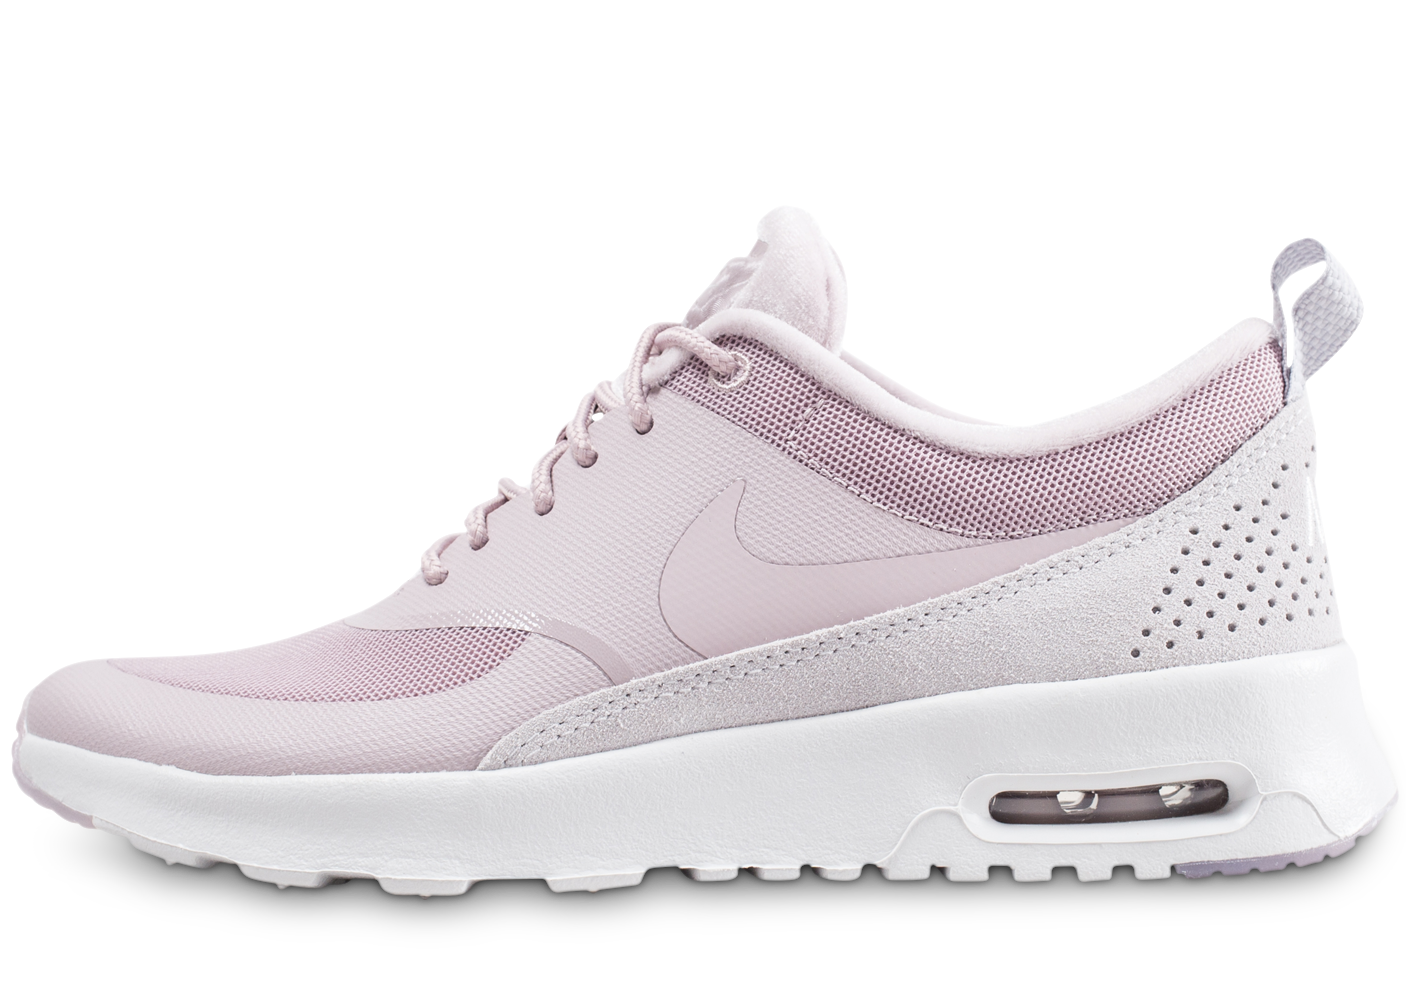 Nike Femme Air Max Thea Lx Rose Et Blanche Baskets